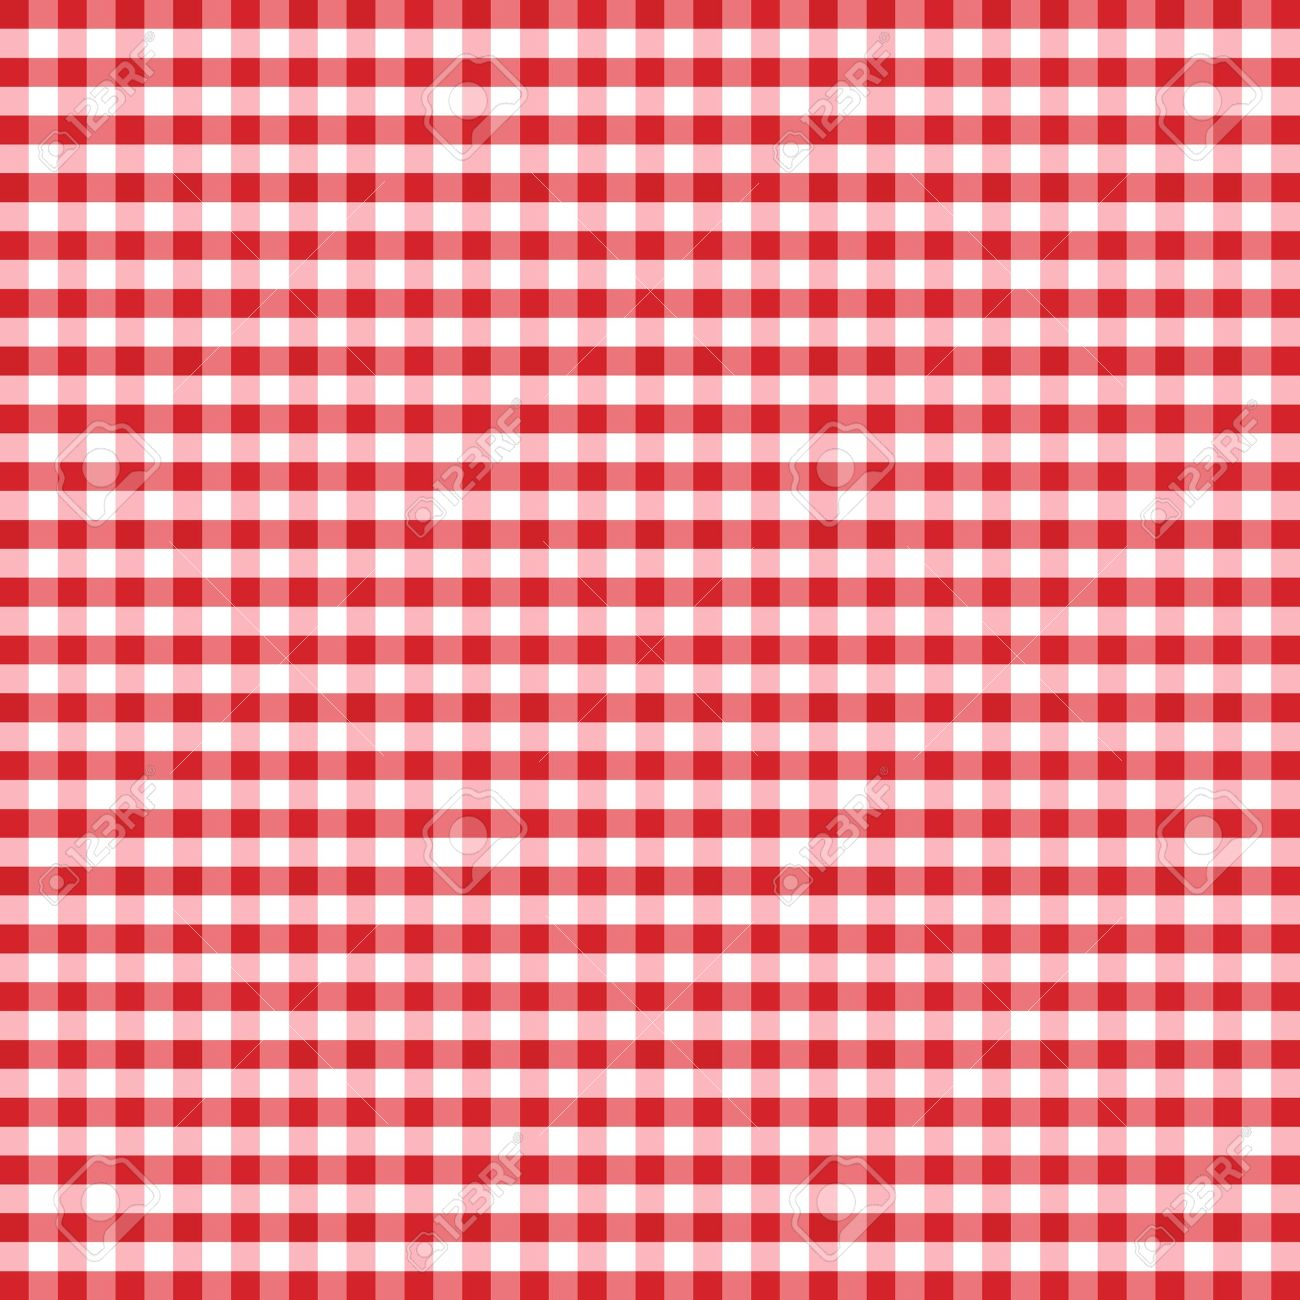 Red checkered background clipart clipground - Red Checkered Background Clipart Clipground 1300x1300